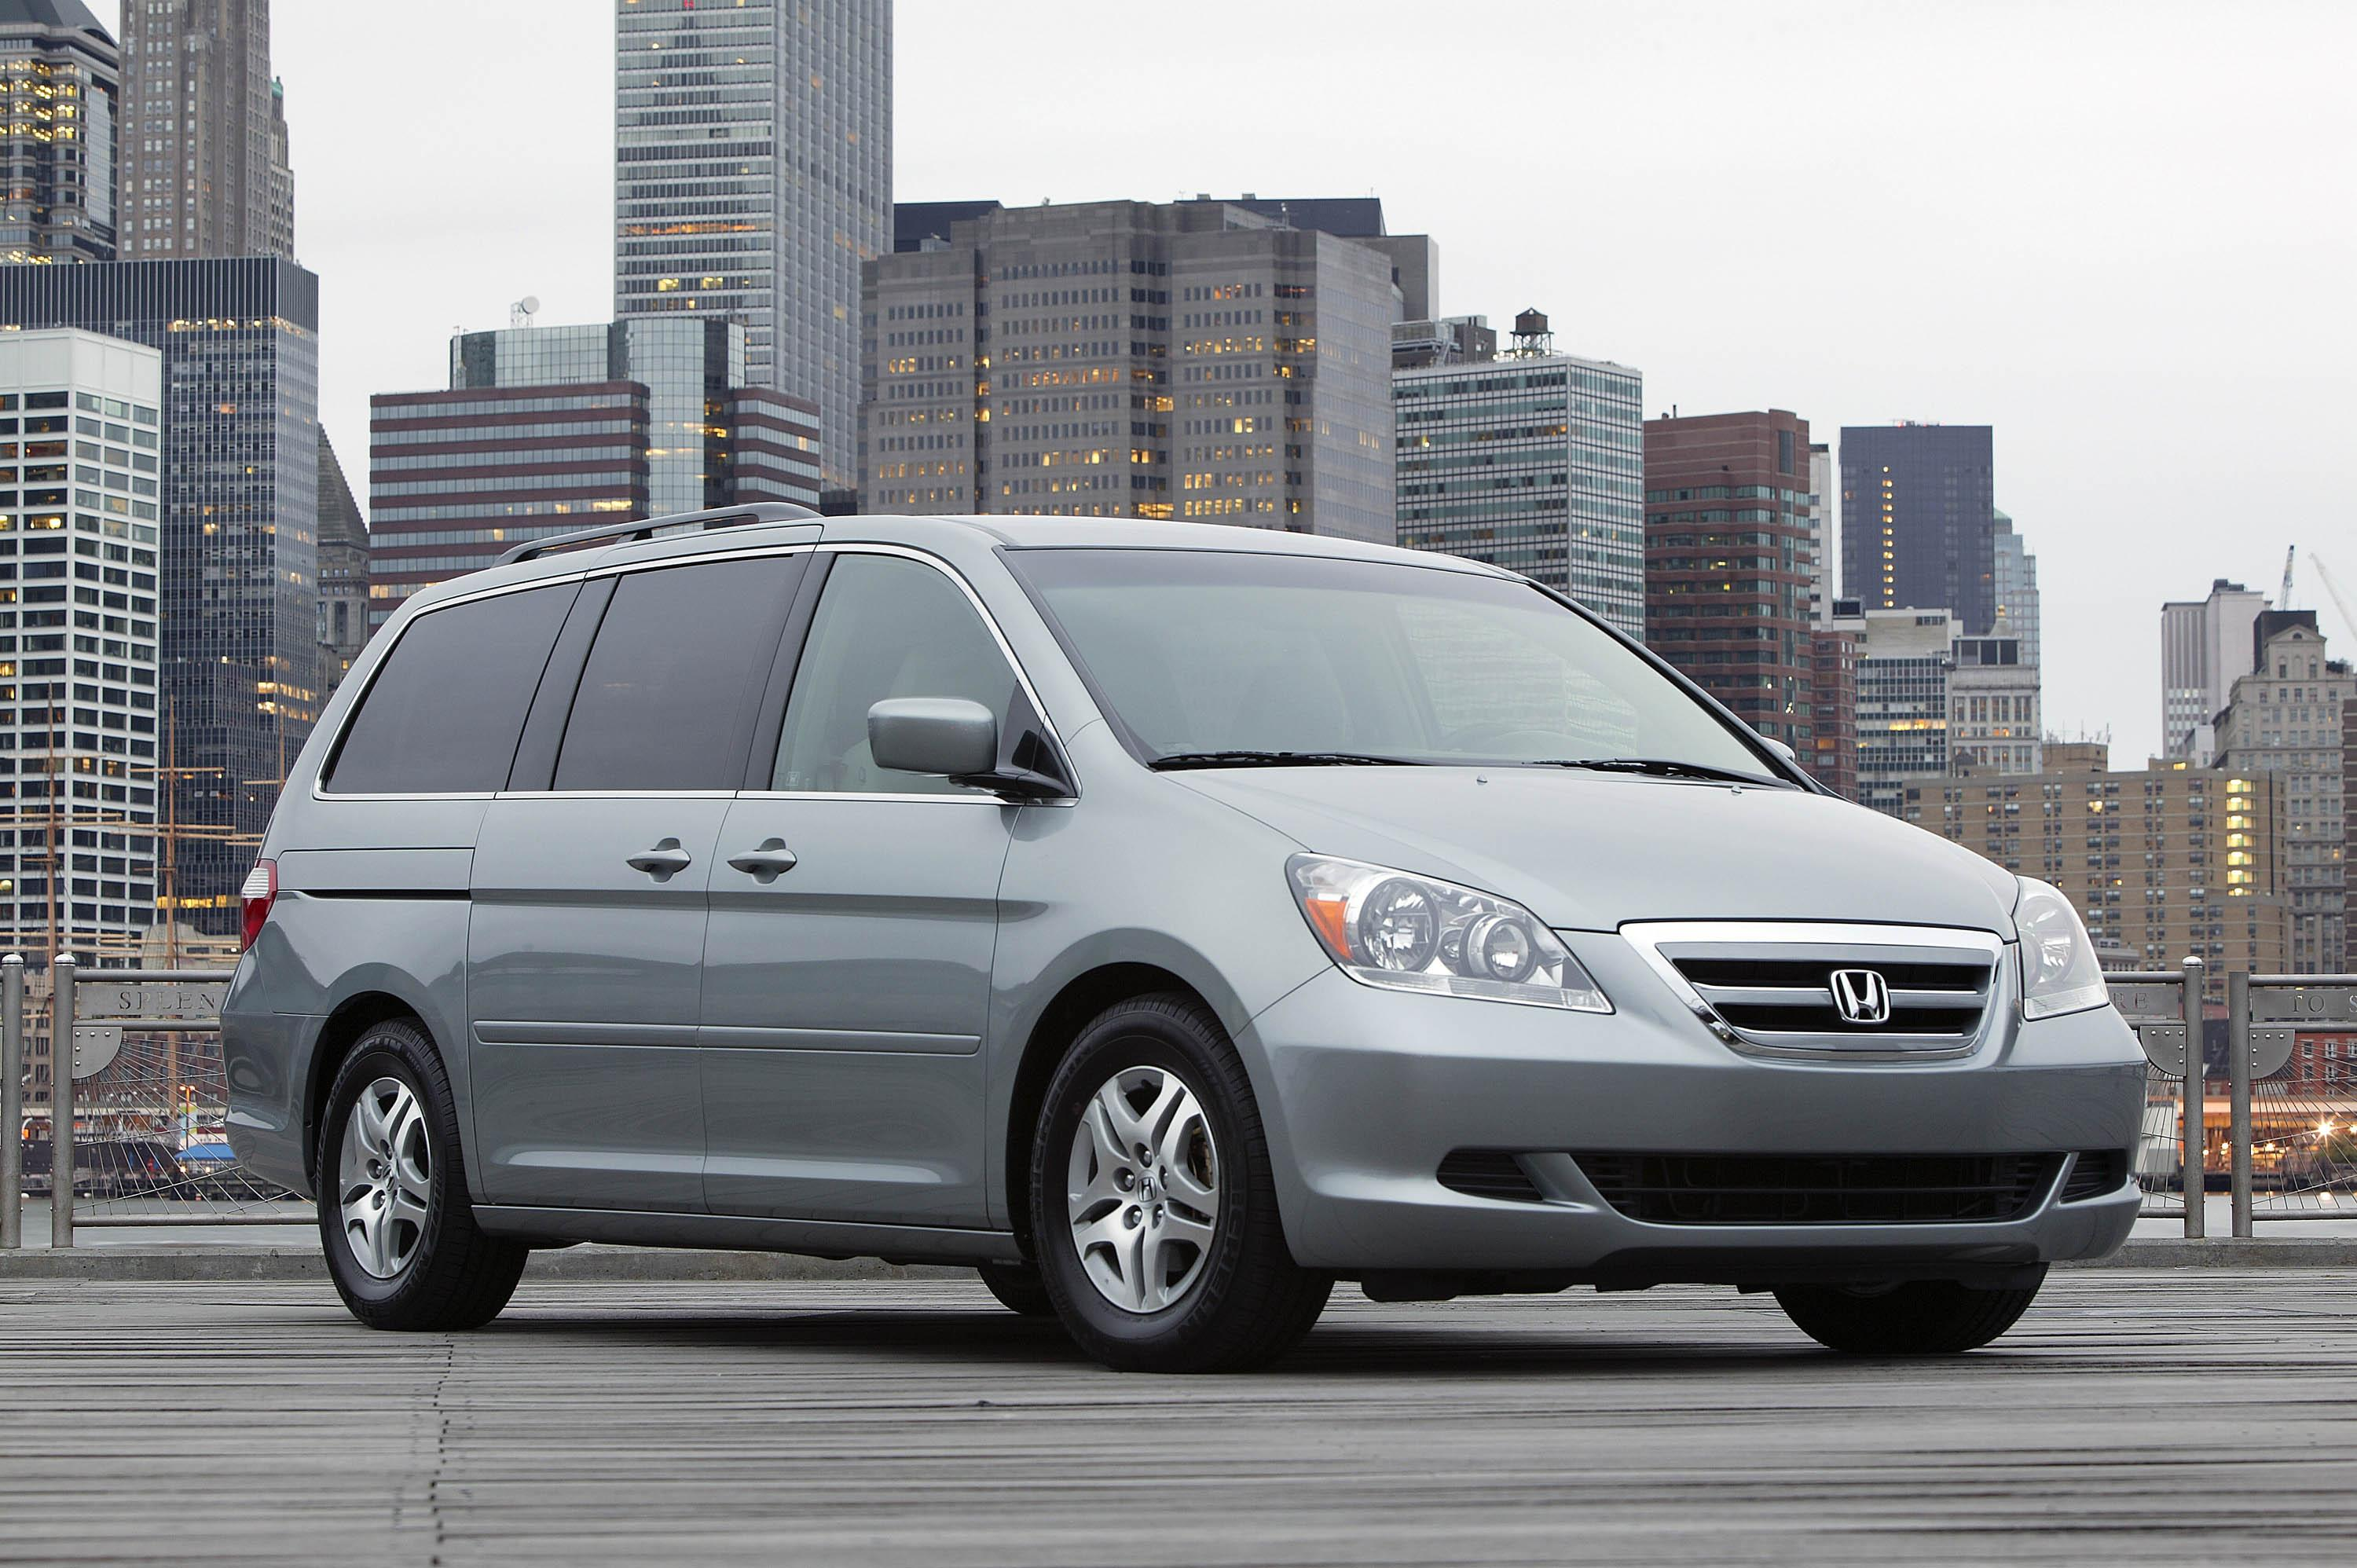 2007 honda odyssey review gallery top speed. Black Bedroom Furniture Sets. Home Design Ideas